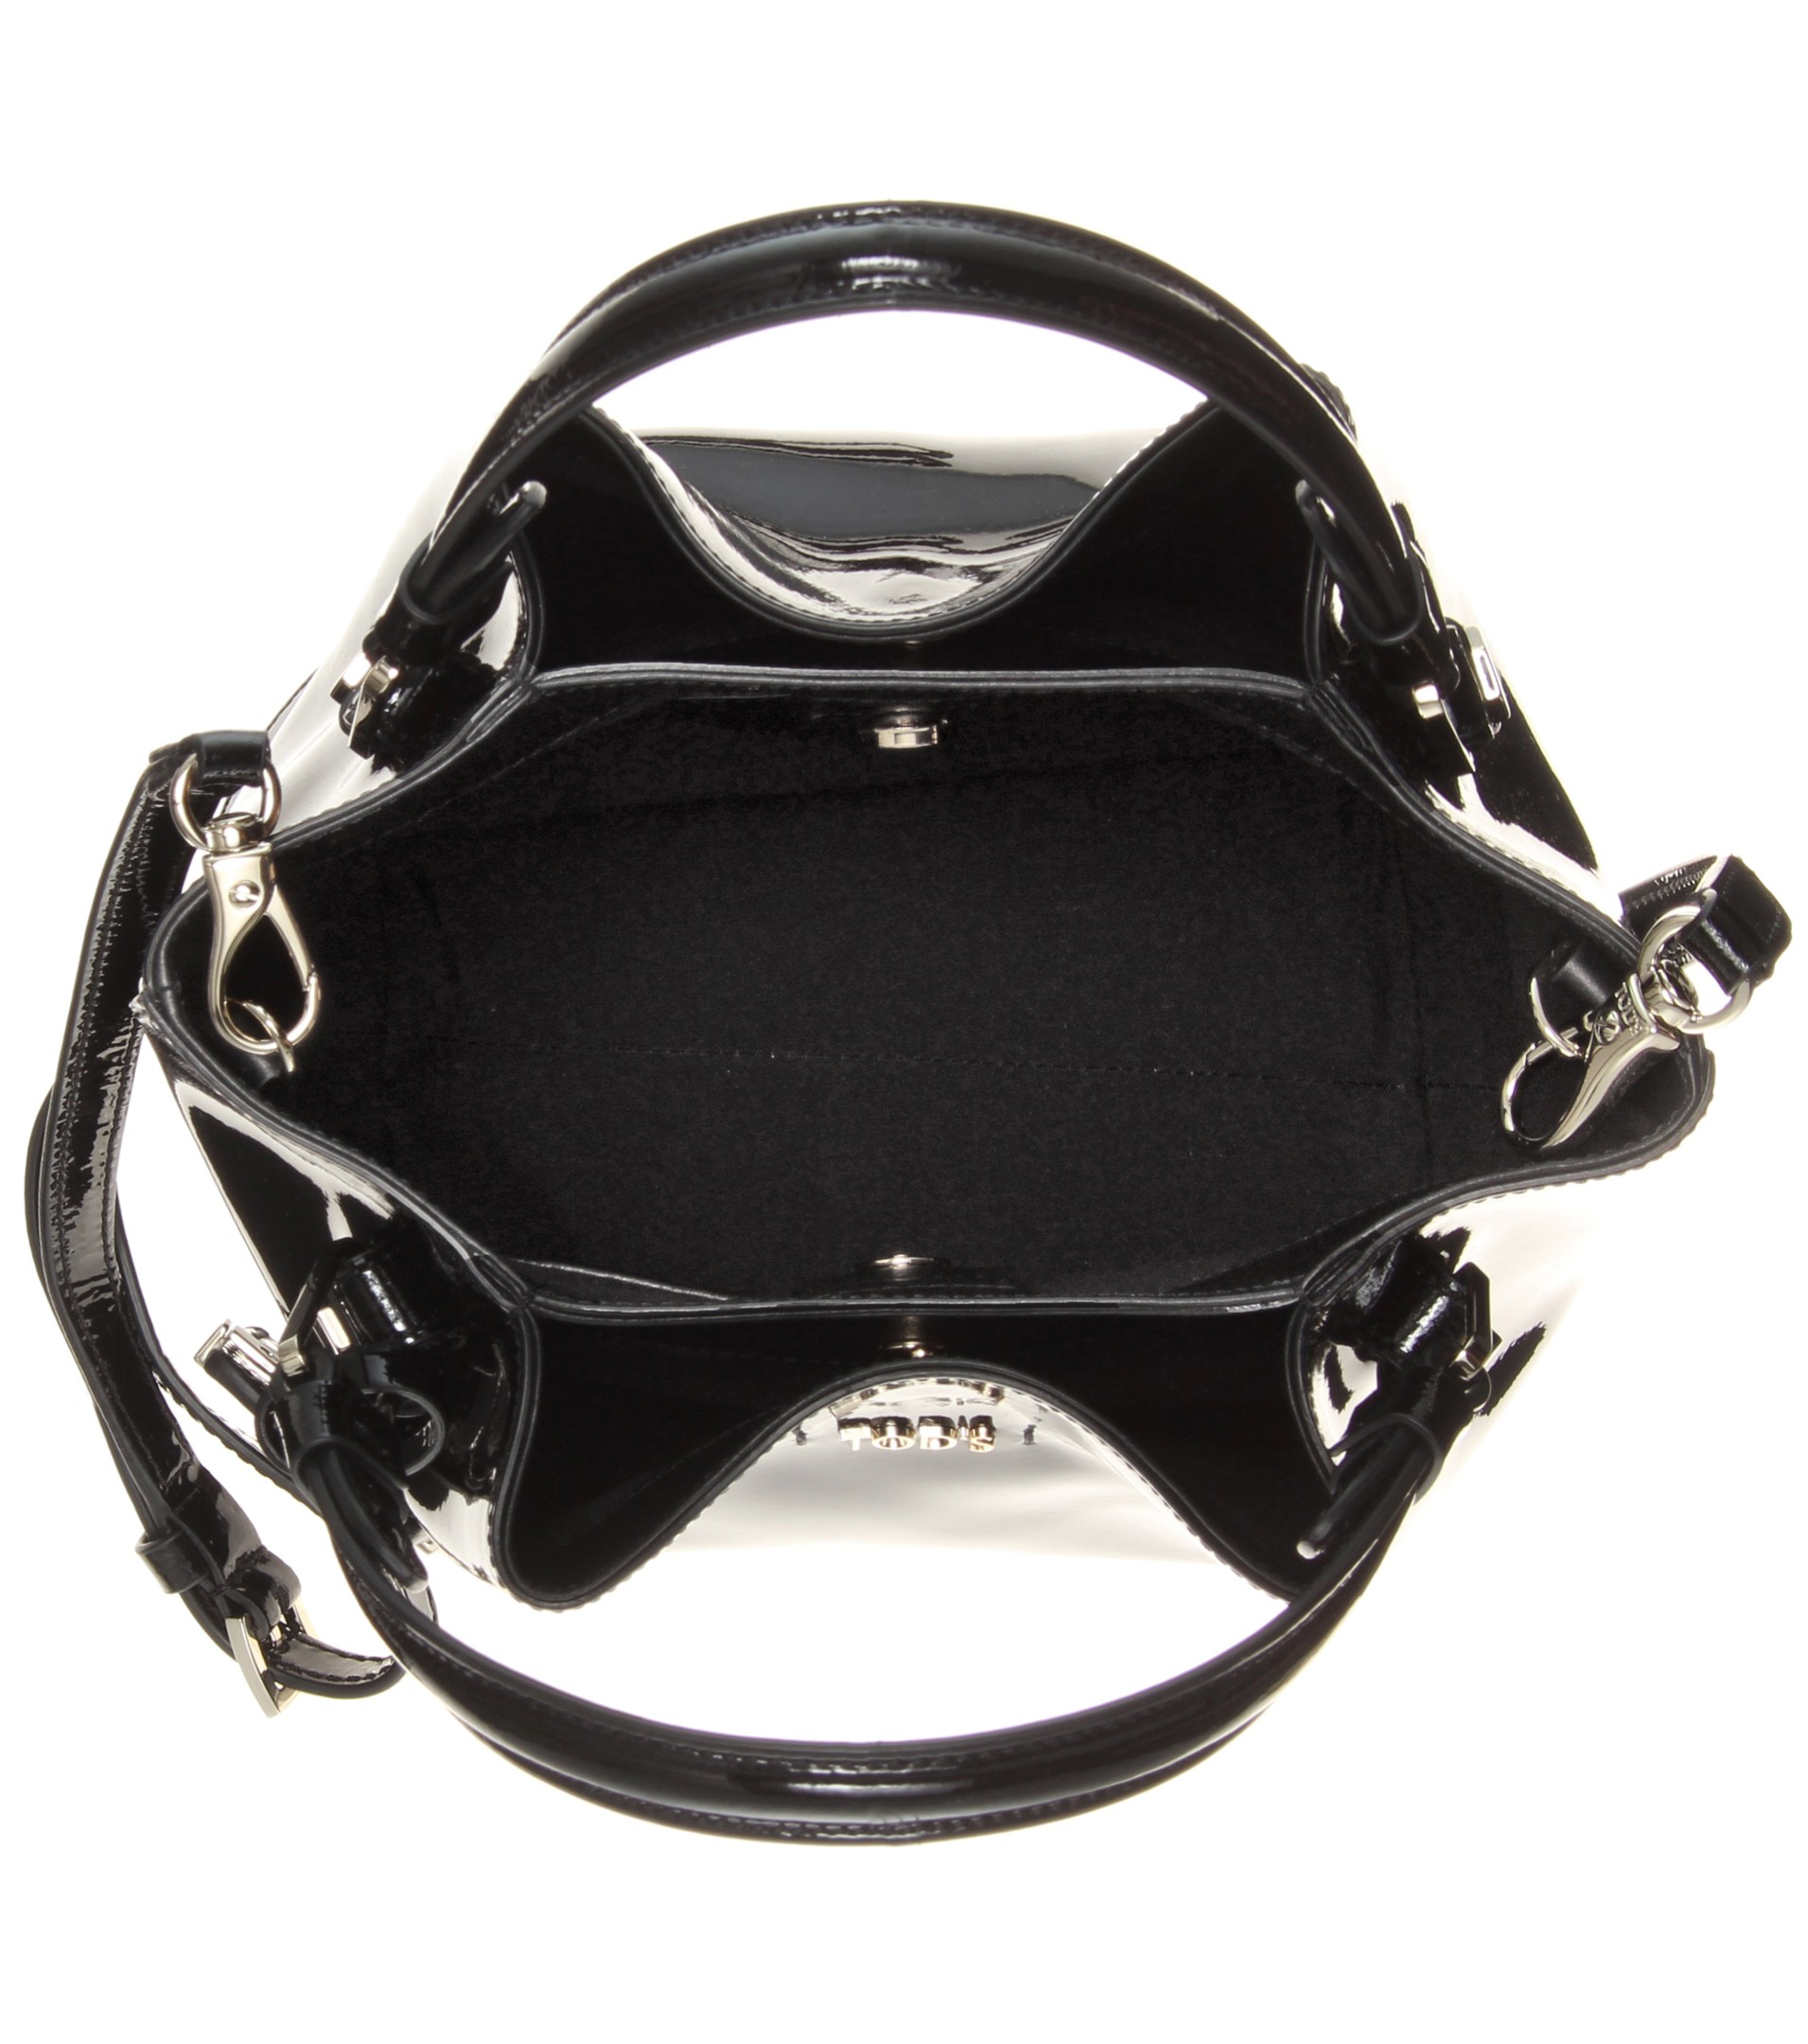 Tod s Flower Micro Patent-Leather Bag in Black - Lyst 3f1076a582300